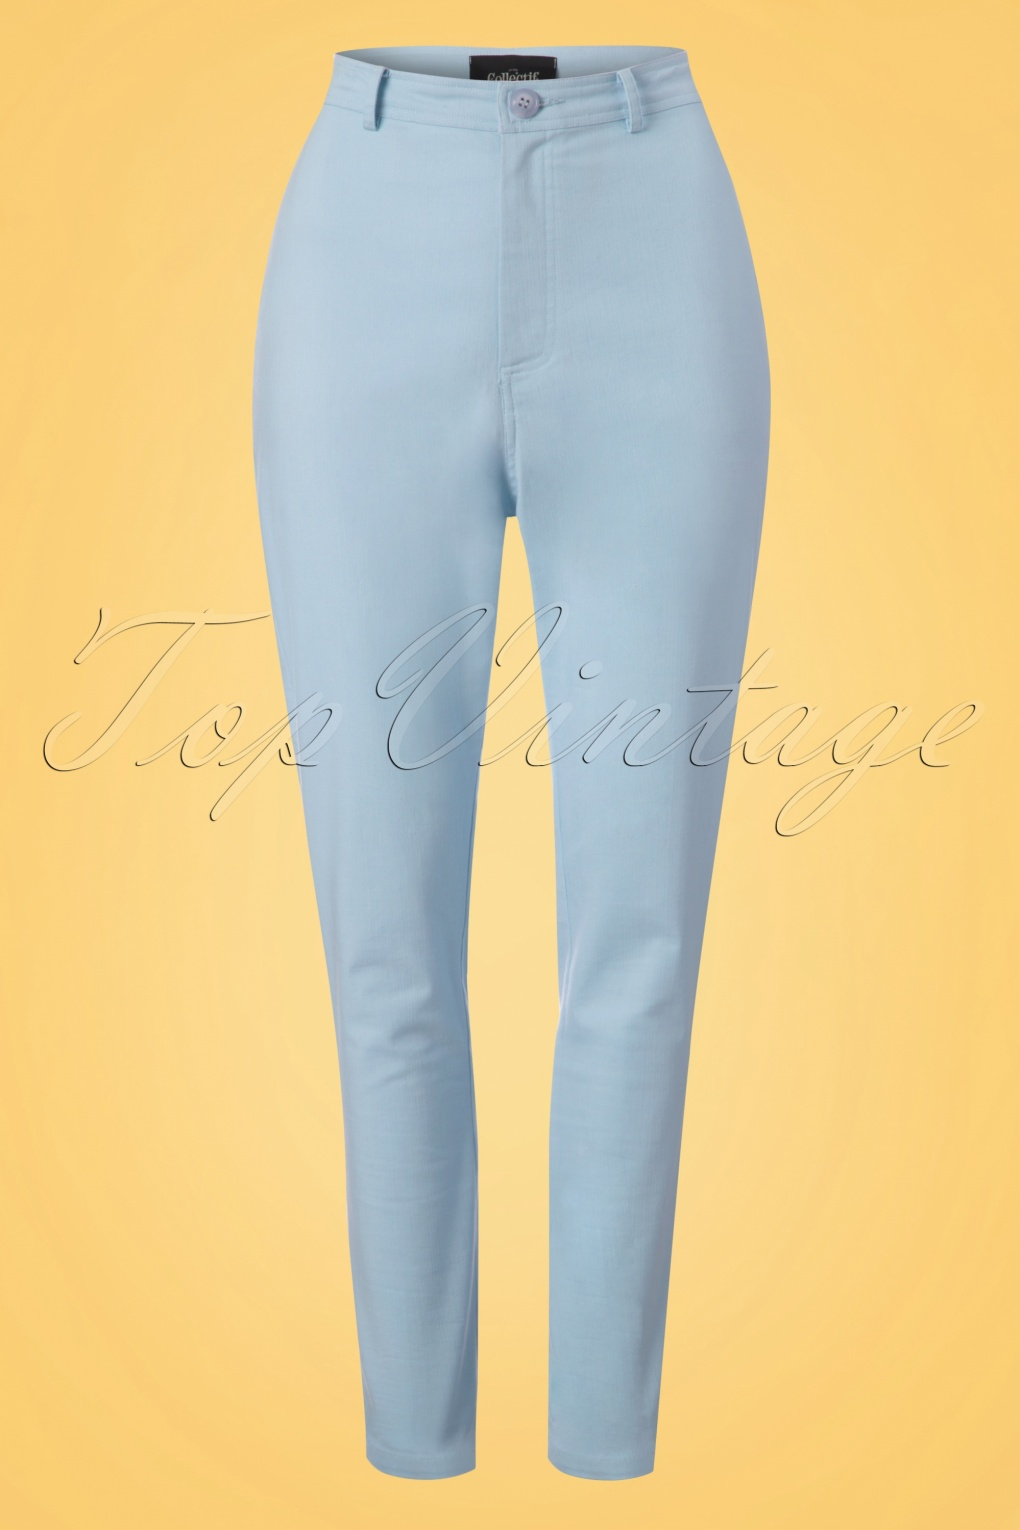 1950s Pants & Jeans- High Waist, Wide Leg, Capri, Pedal Pushers 50s Maddie Trousers in Pale Blue £39.53 AT vintagedancer.com